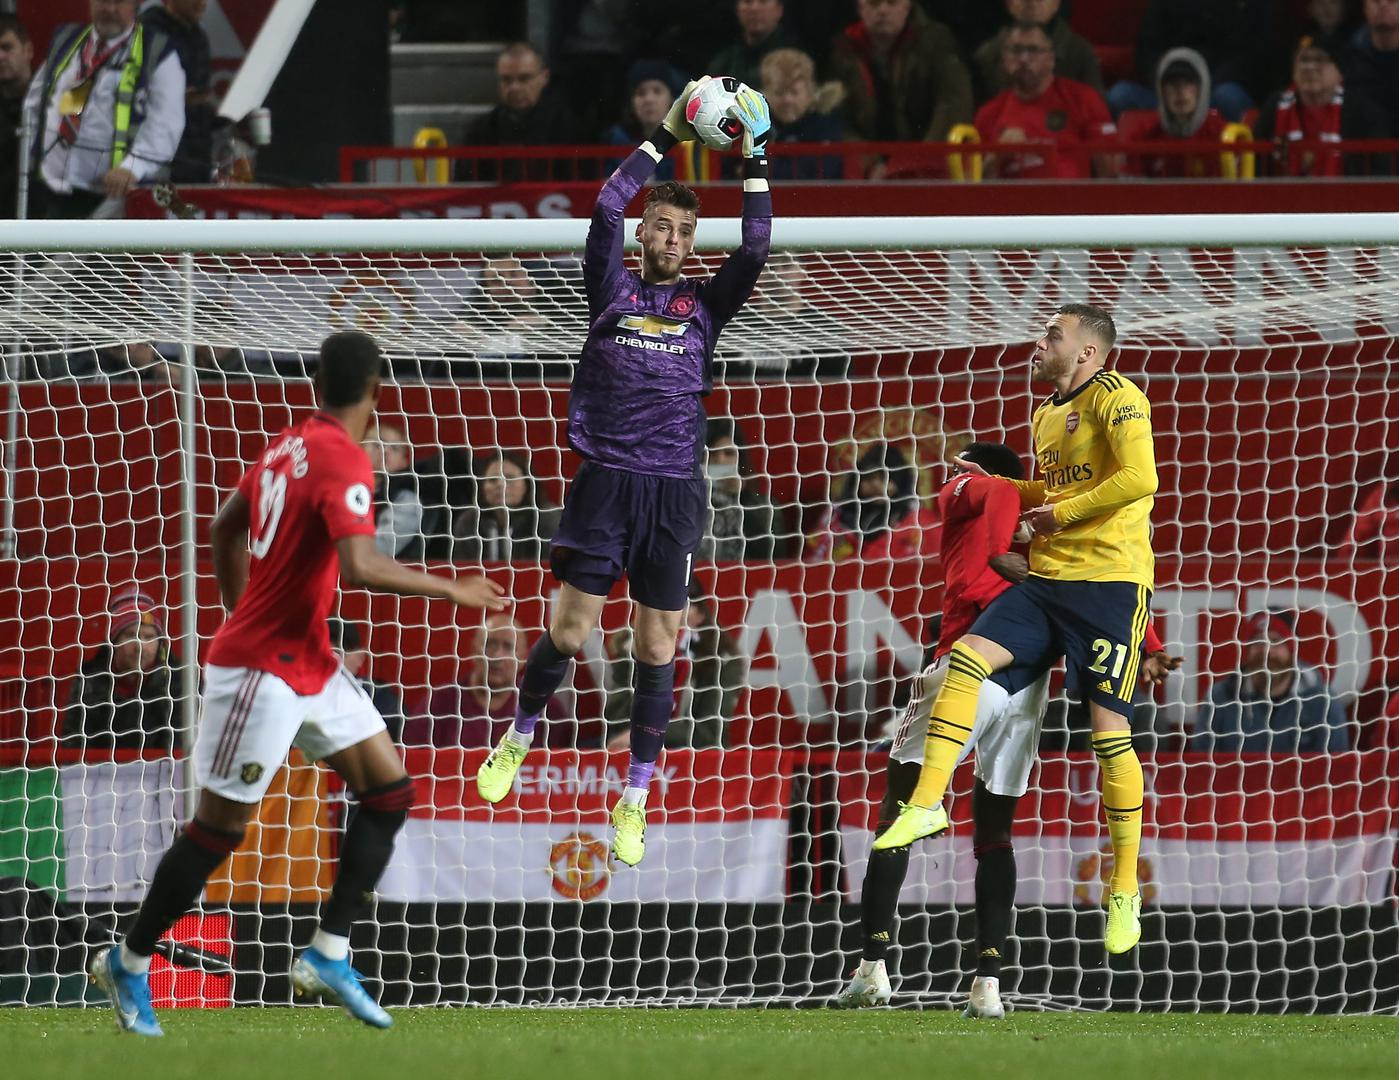 David De Gea rises to catch the ball.,